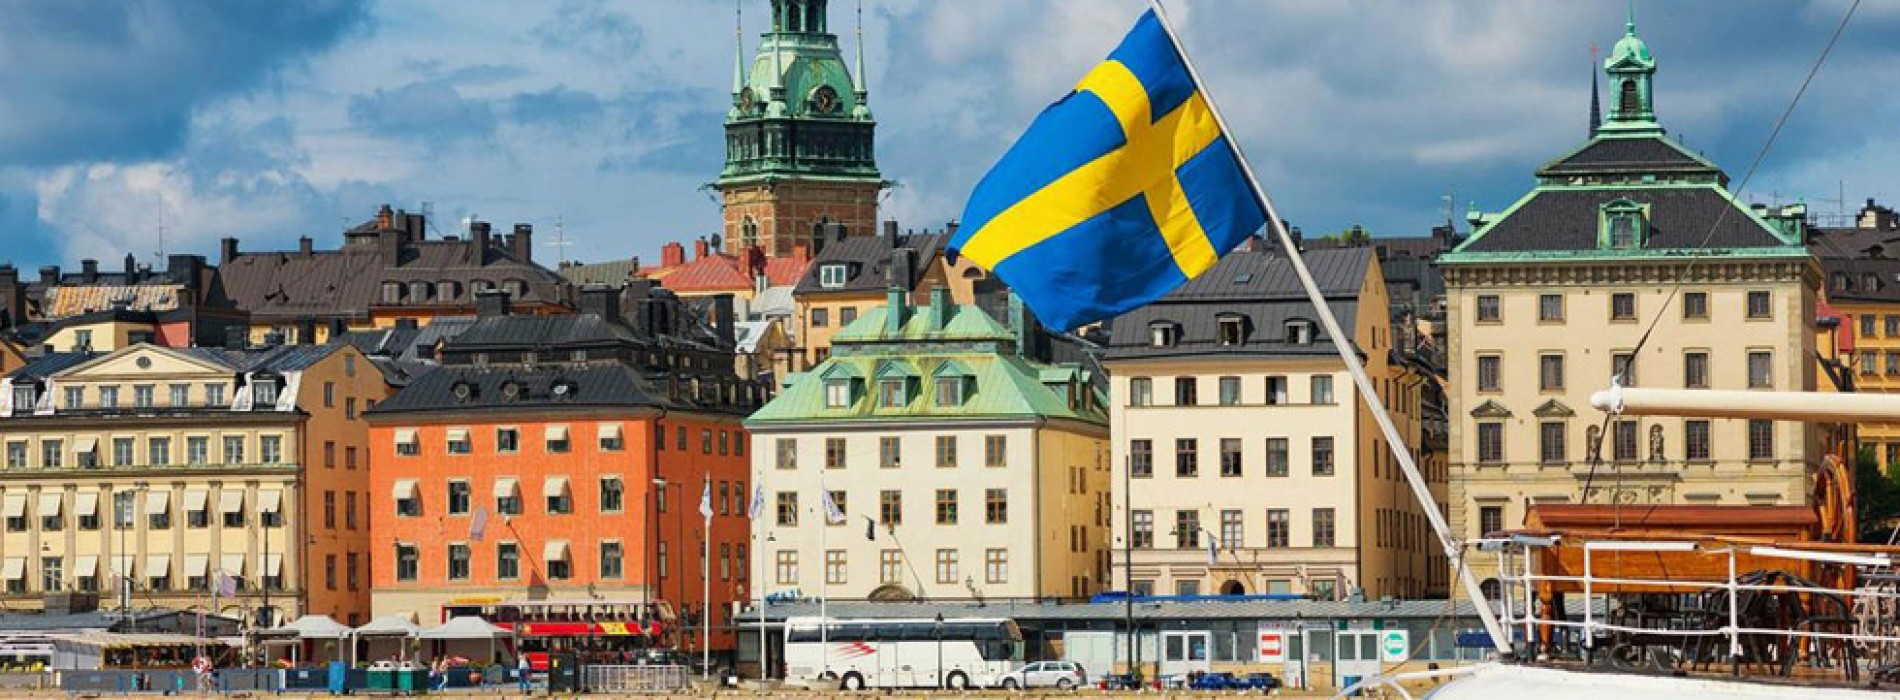 Sweden publishes open letter inviting lovers, haters and hesitators to its capital